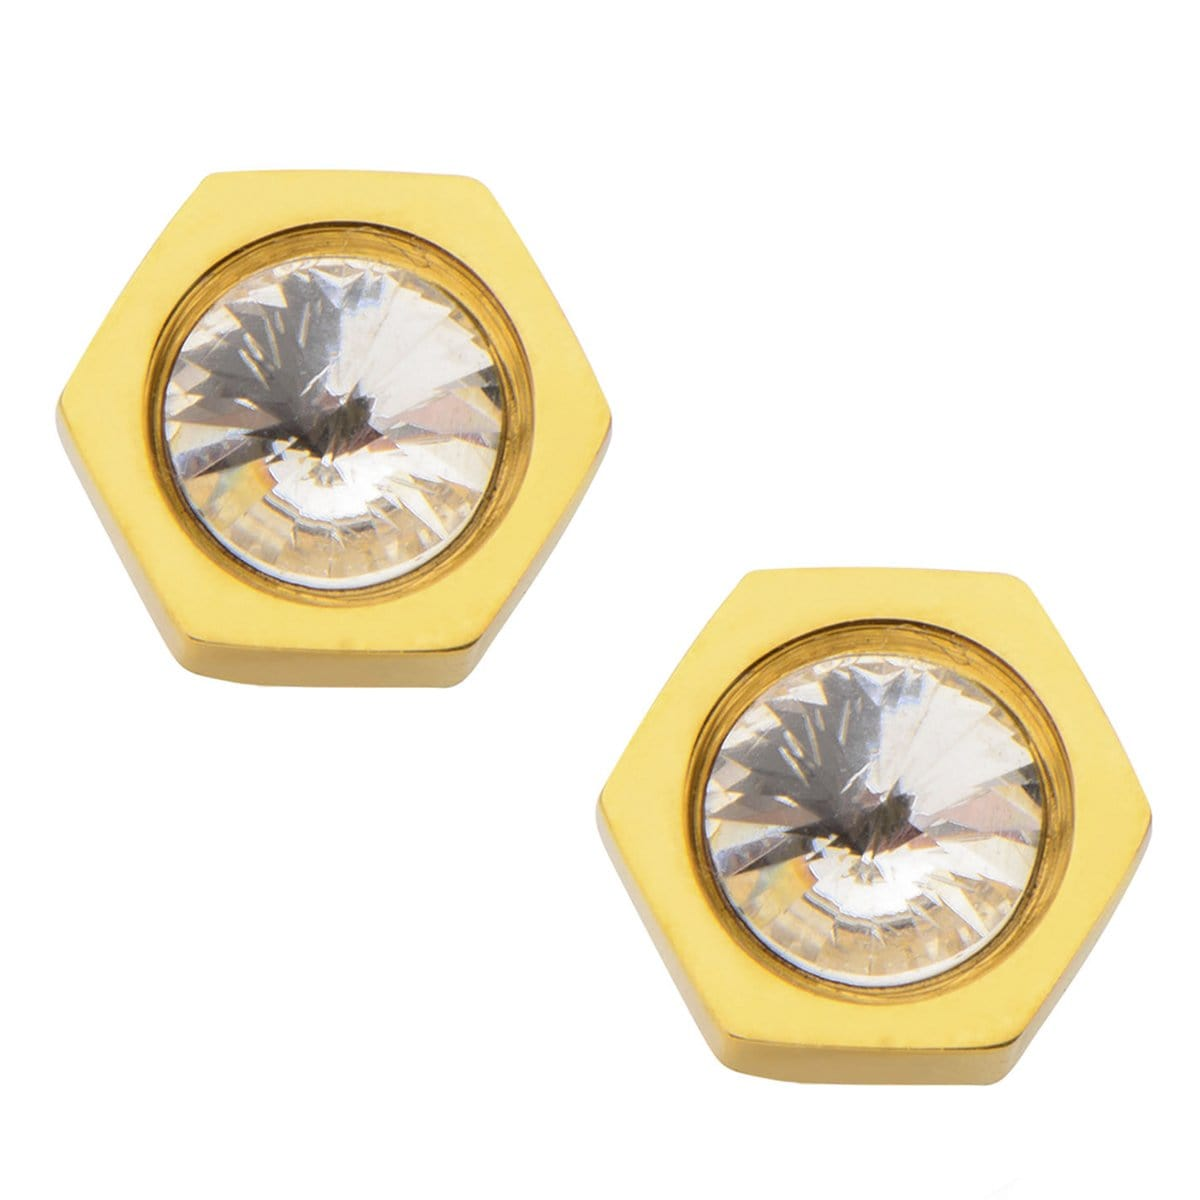 Gold Stainless Steel with Crystal Hexagon Studs Earrings